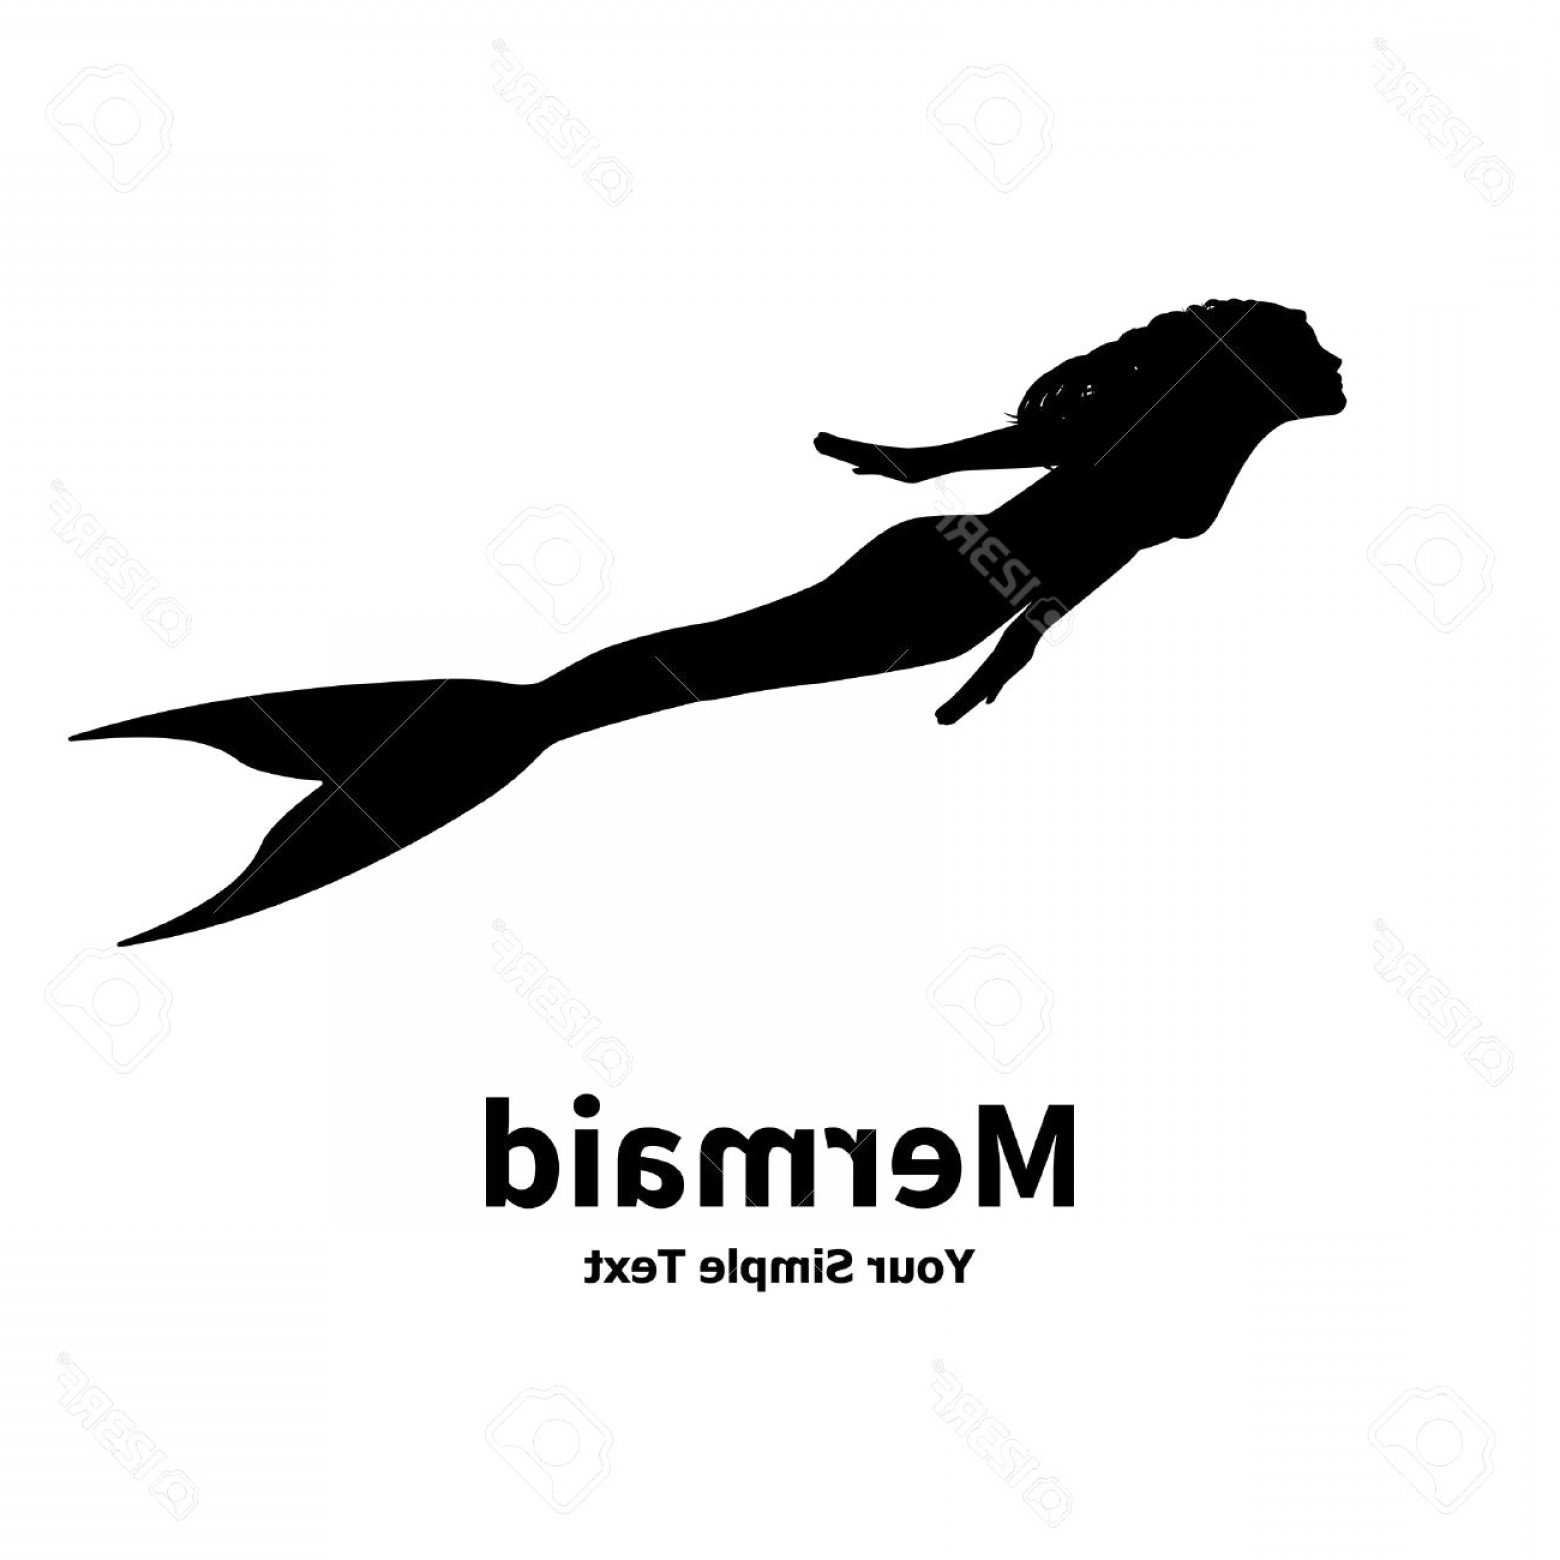 Atlanta Falcons Logo Vector Silhouette: Vector Illustration Of A Mermaid Silhouette Isolated On White Background Sea Nymph With An Inscripti Simple